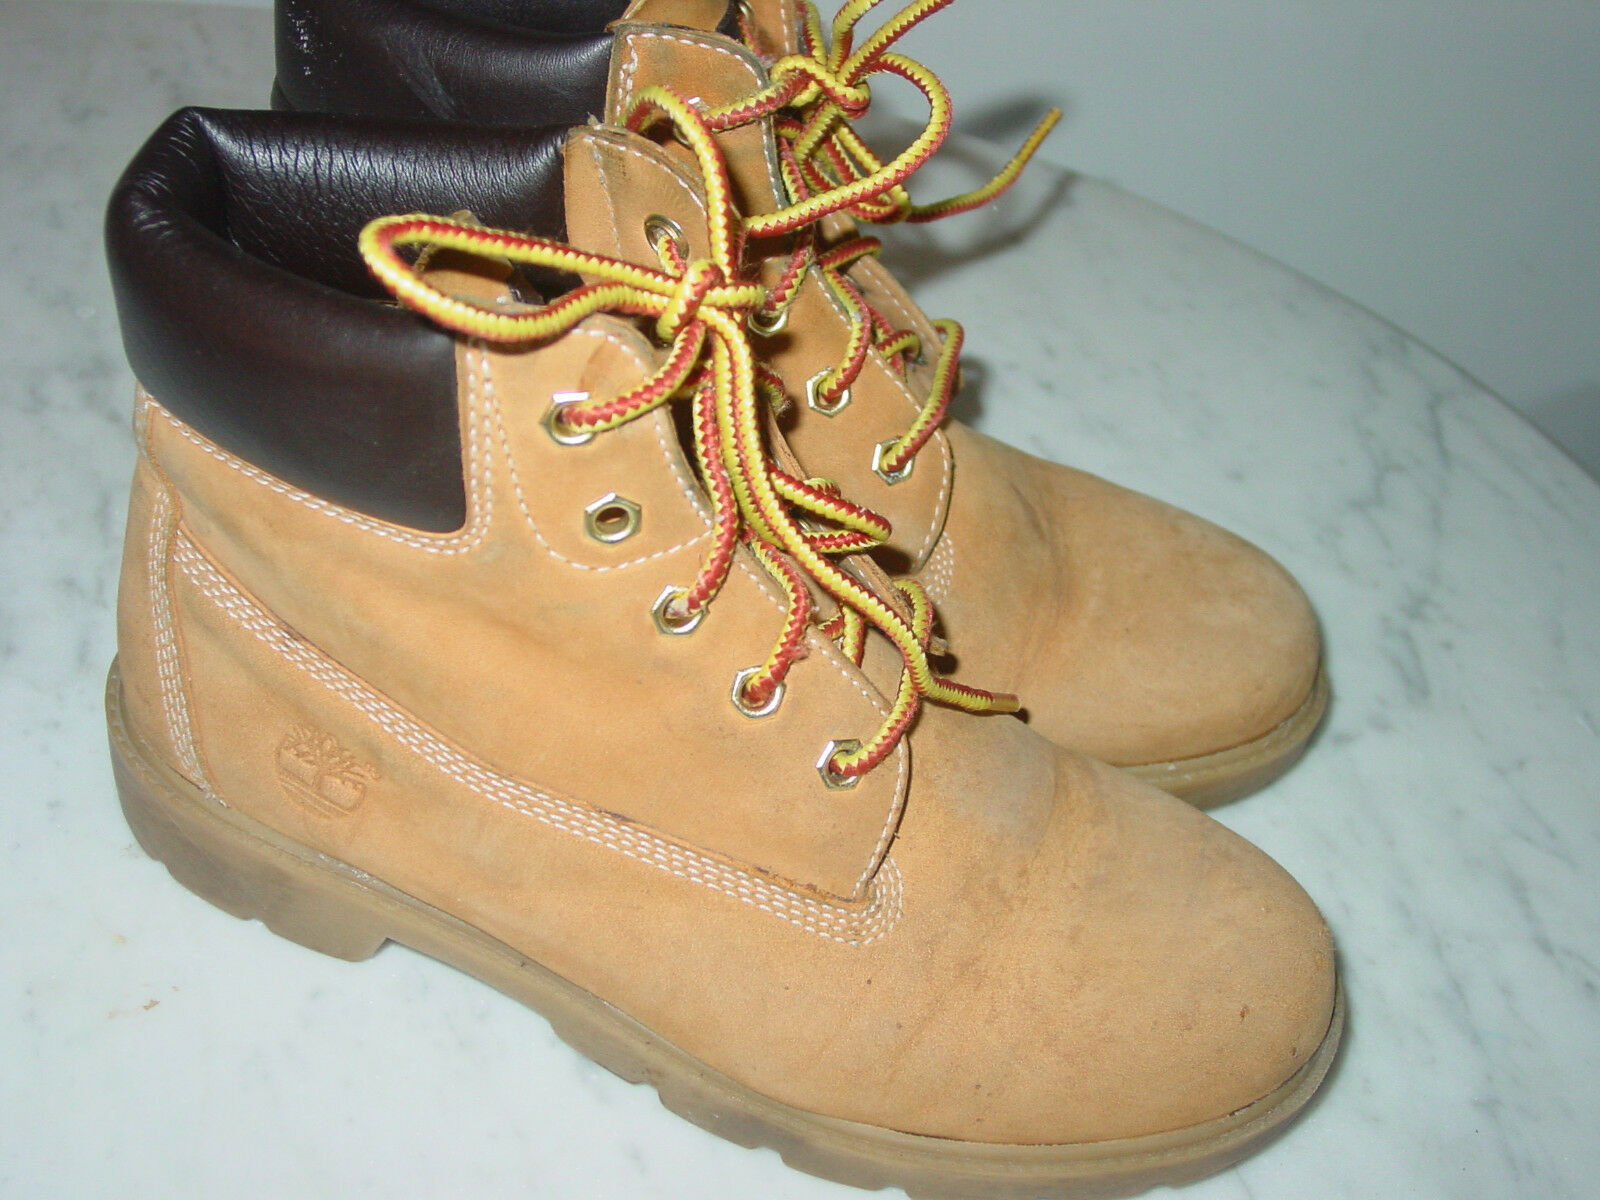 f096d6e3520d0 UPC 761020104757 product image for Timberland Wheat 6 Inch Classic Wheat 10960  Youth Boots Size 4.5 ...